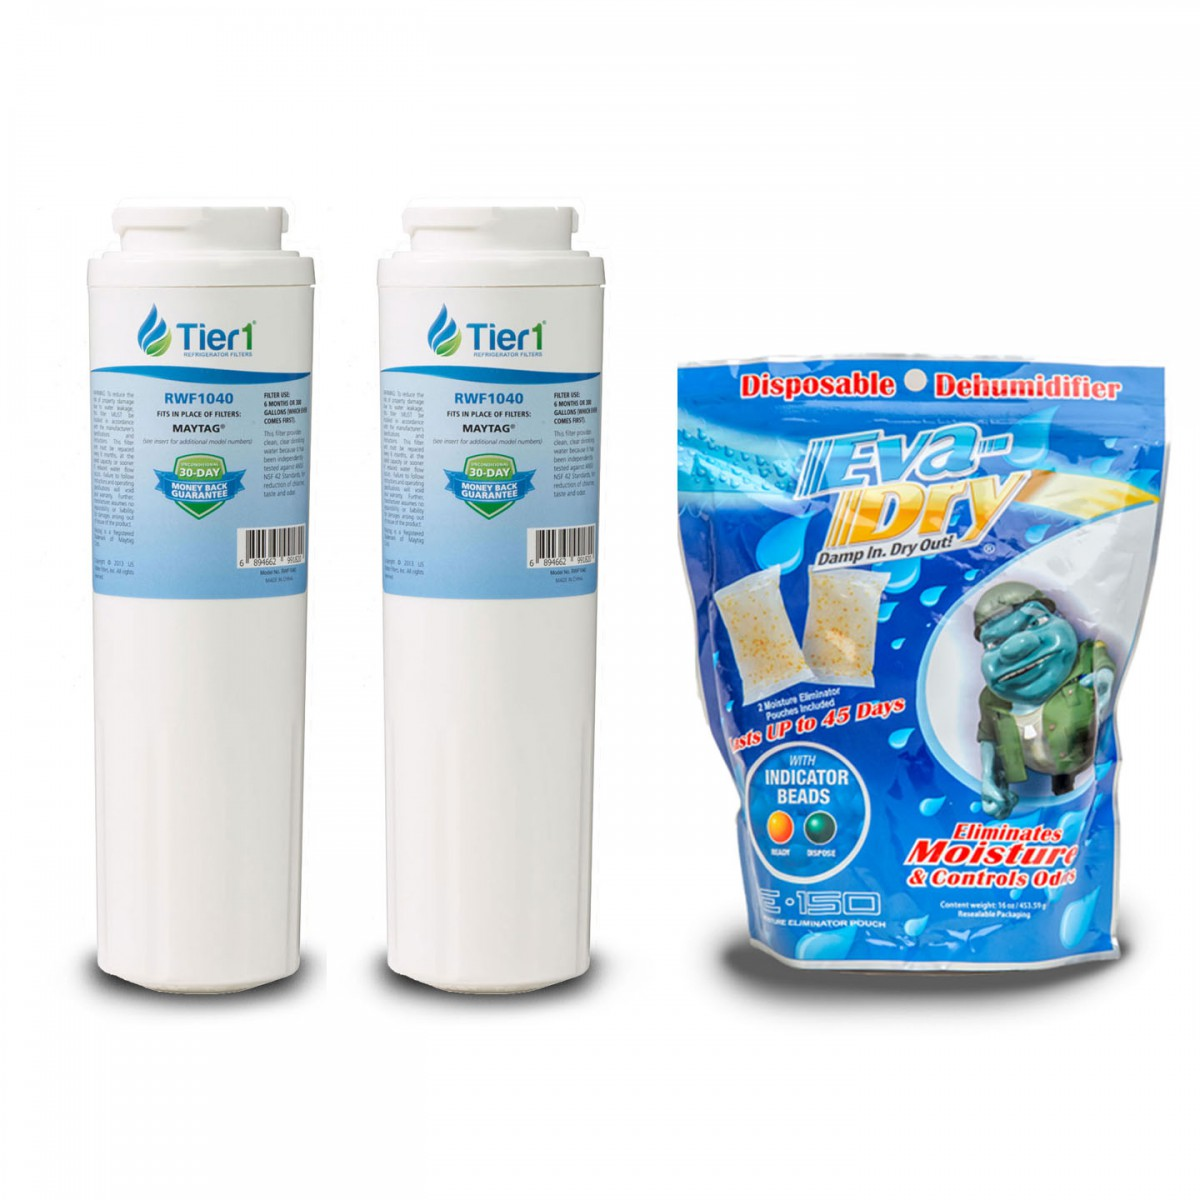 EDR4RXD1 EveryDrop UKF8001 Maytag Comparable Water Filter 2-Pack Plus E-150  Eva-Dry Silica Gel 2-Pack by Tier1